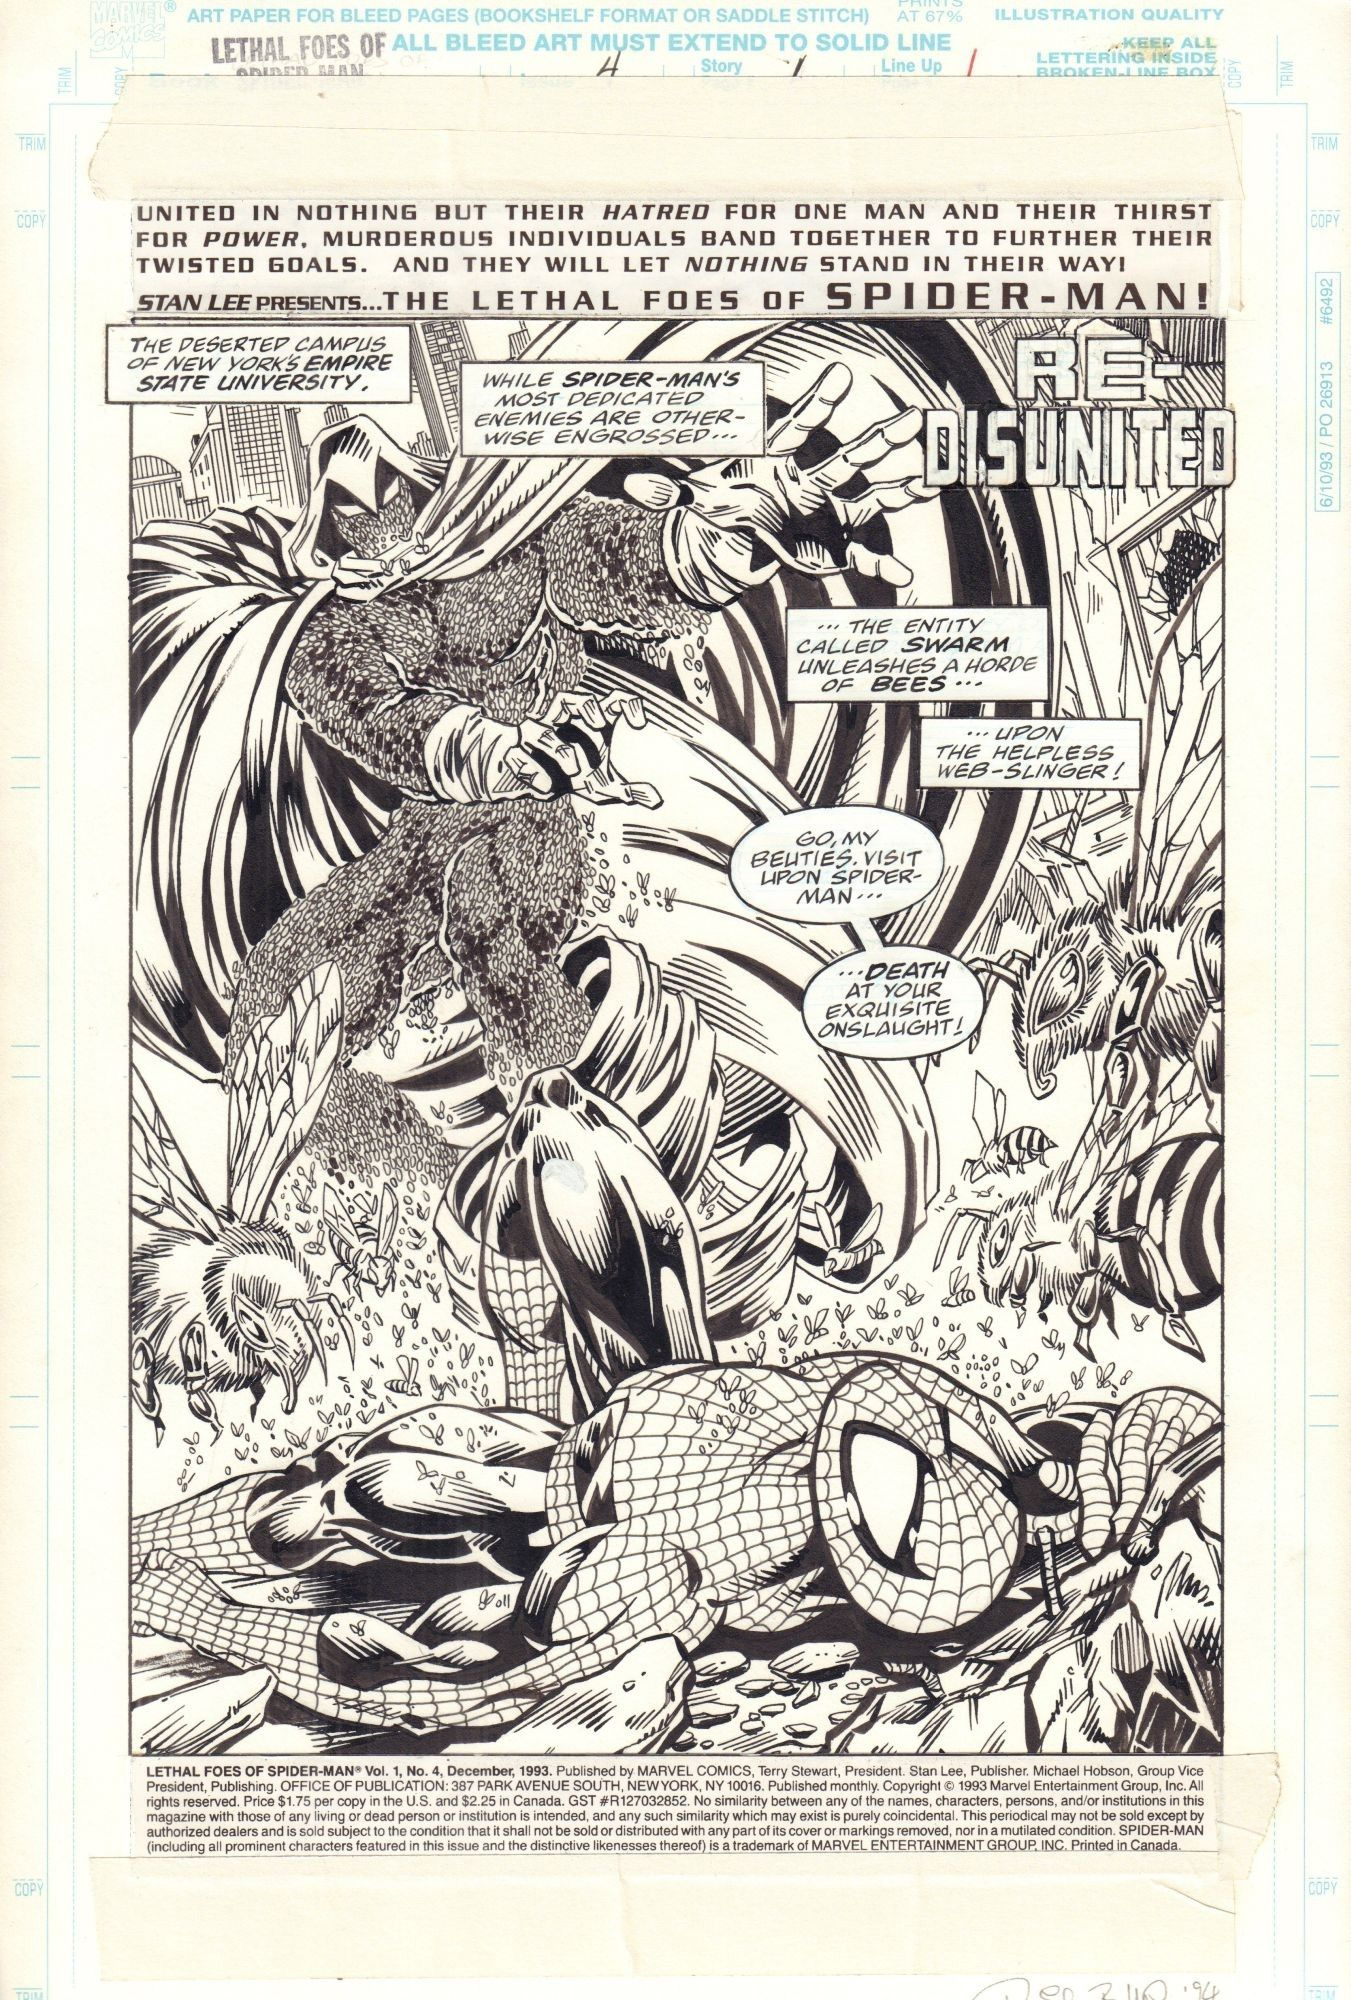 Lethal Foes of Spider-Man #4, s. 1